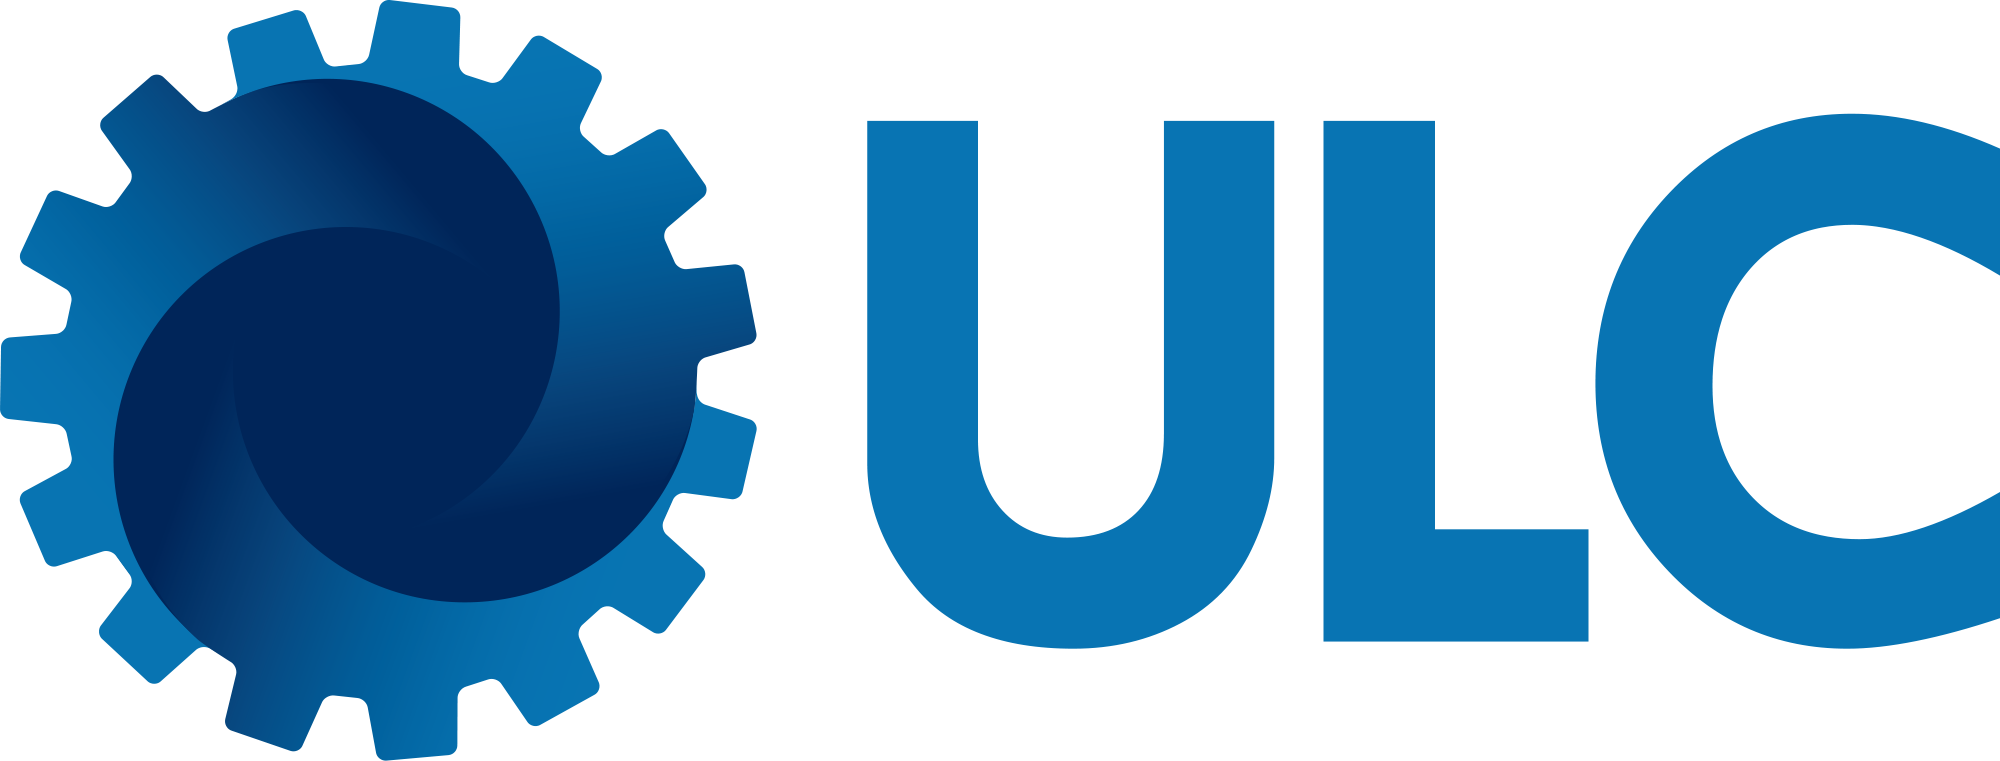 Faa Issues Section 333 Exemption To Ulc Robotics Inc For